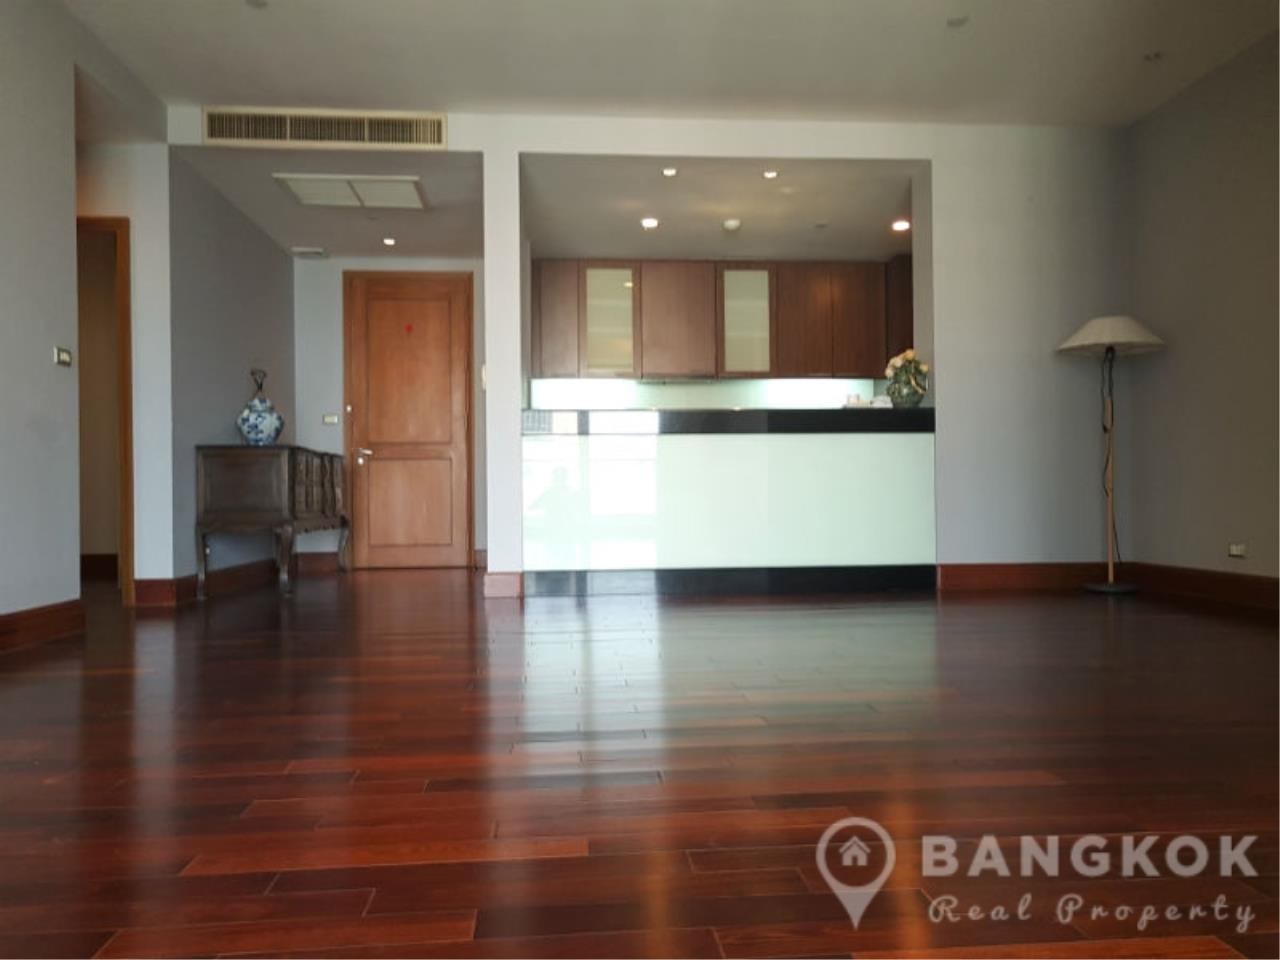 Bangkok Real Property Agency's Sky Villas (Ascott) Sathorn | Spacious High Floor 2 +1 Bed 2 Bath 2